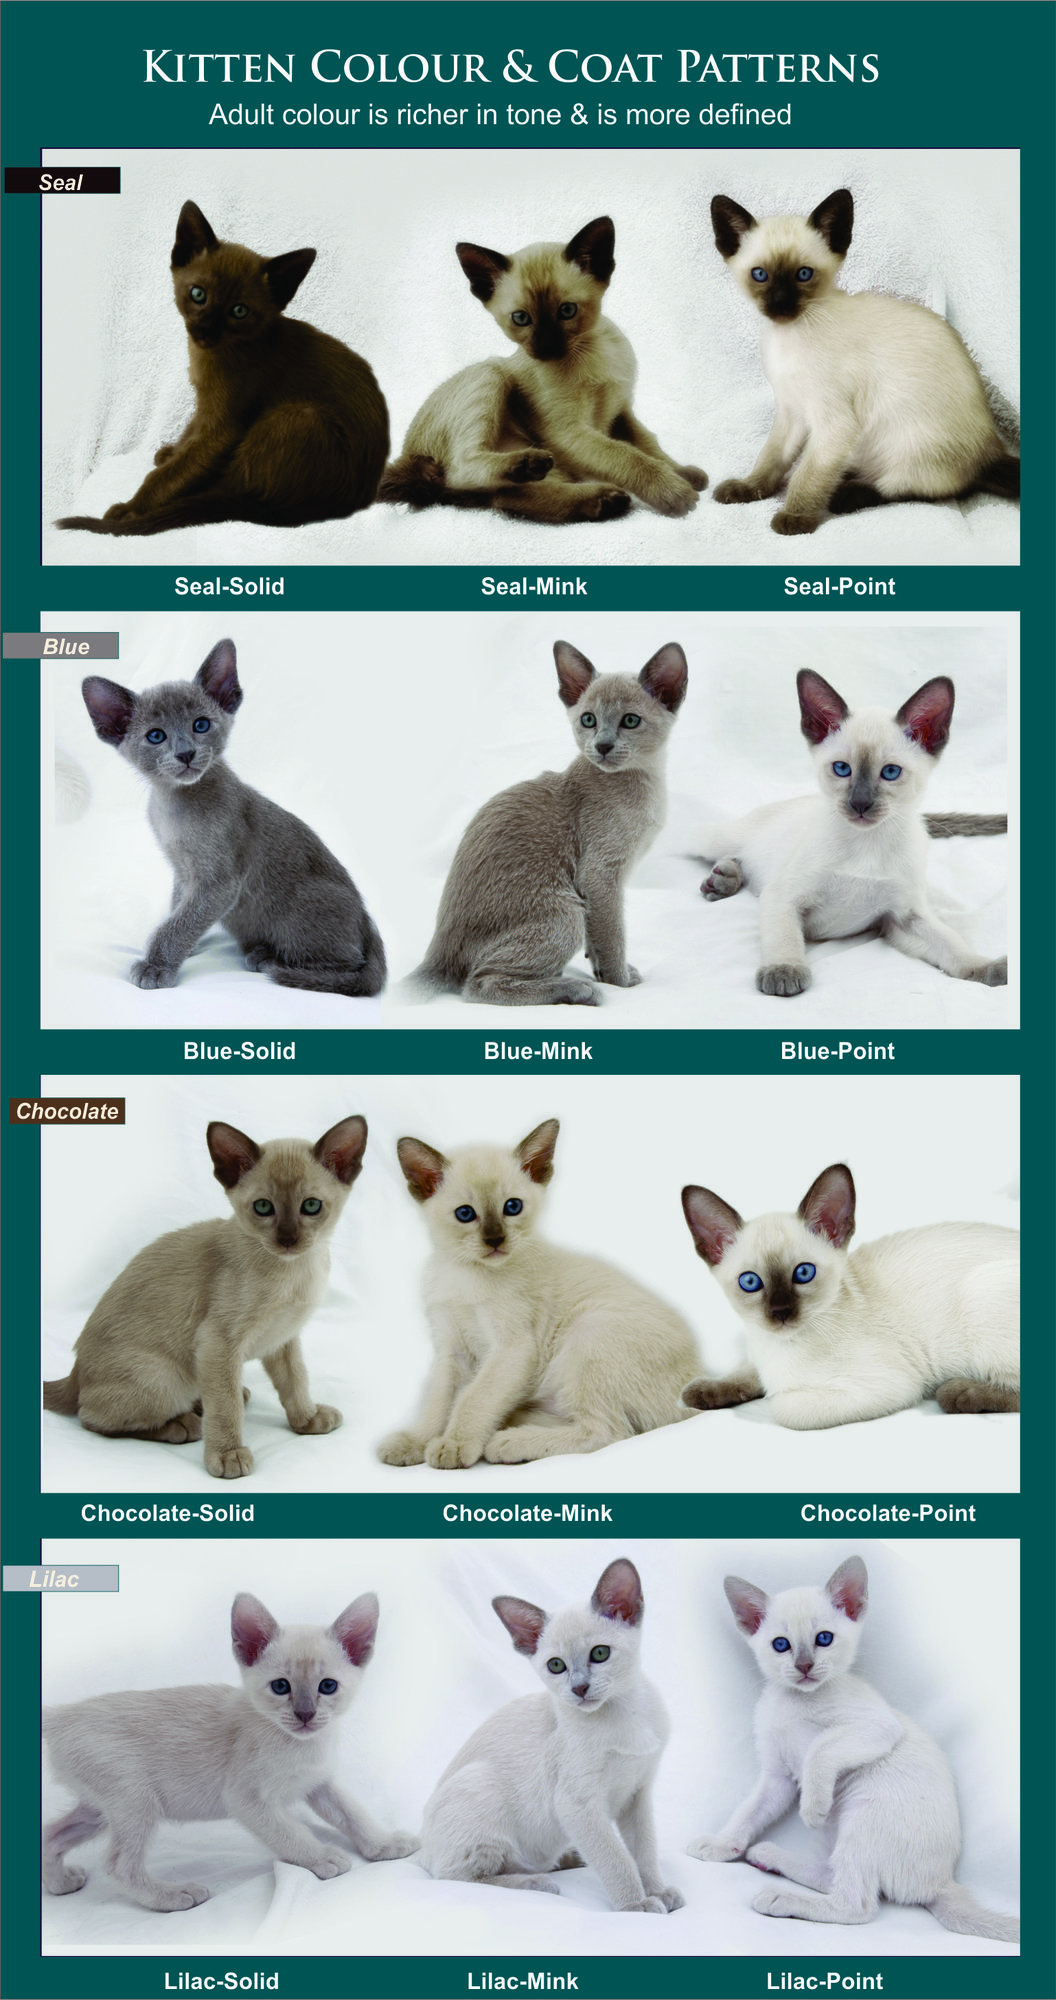 Coat Colour And Pattern Tonkinese Cats Kittens Queensland